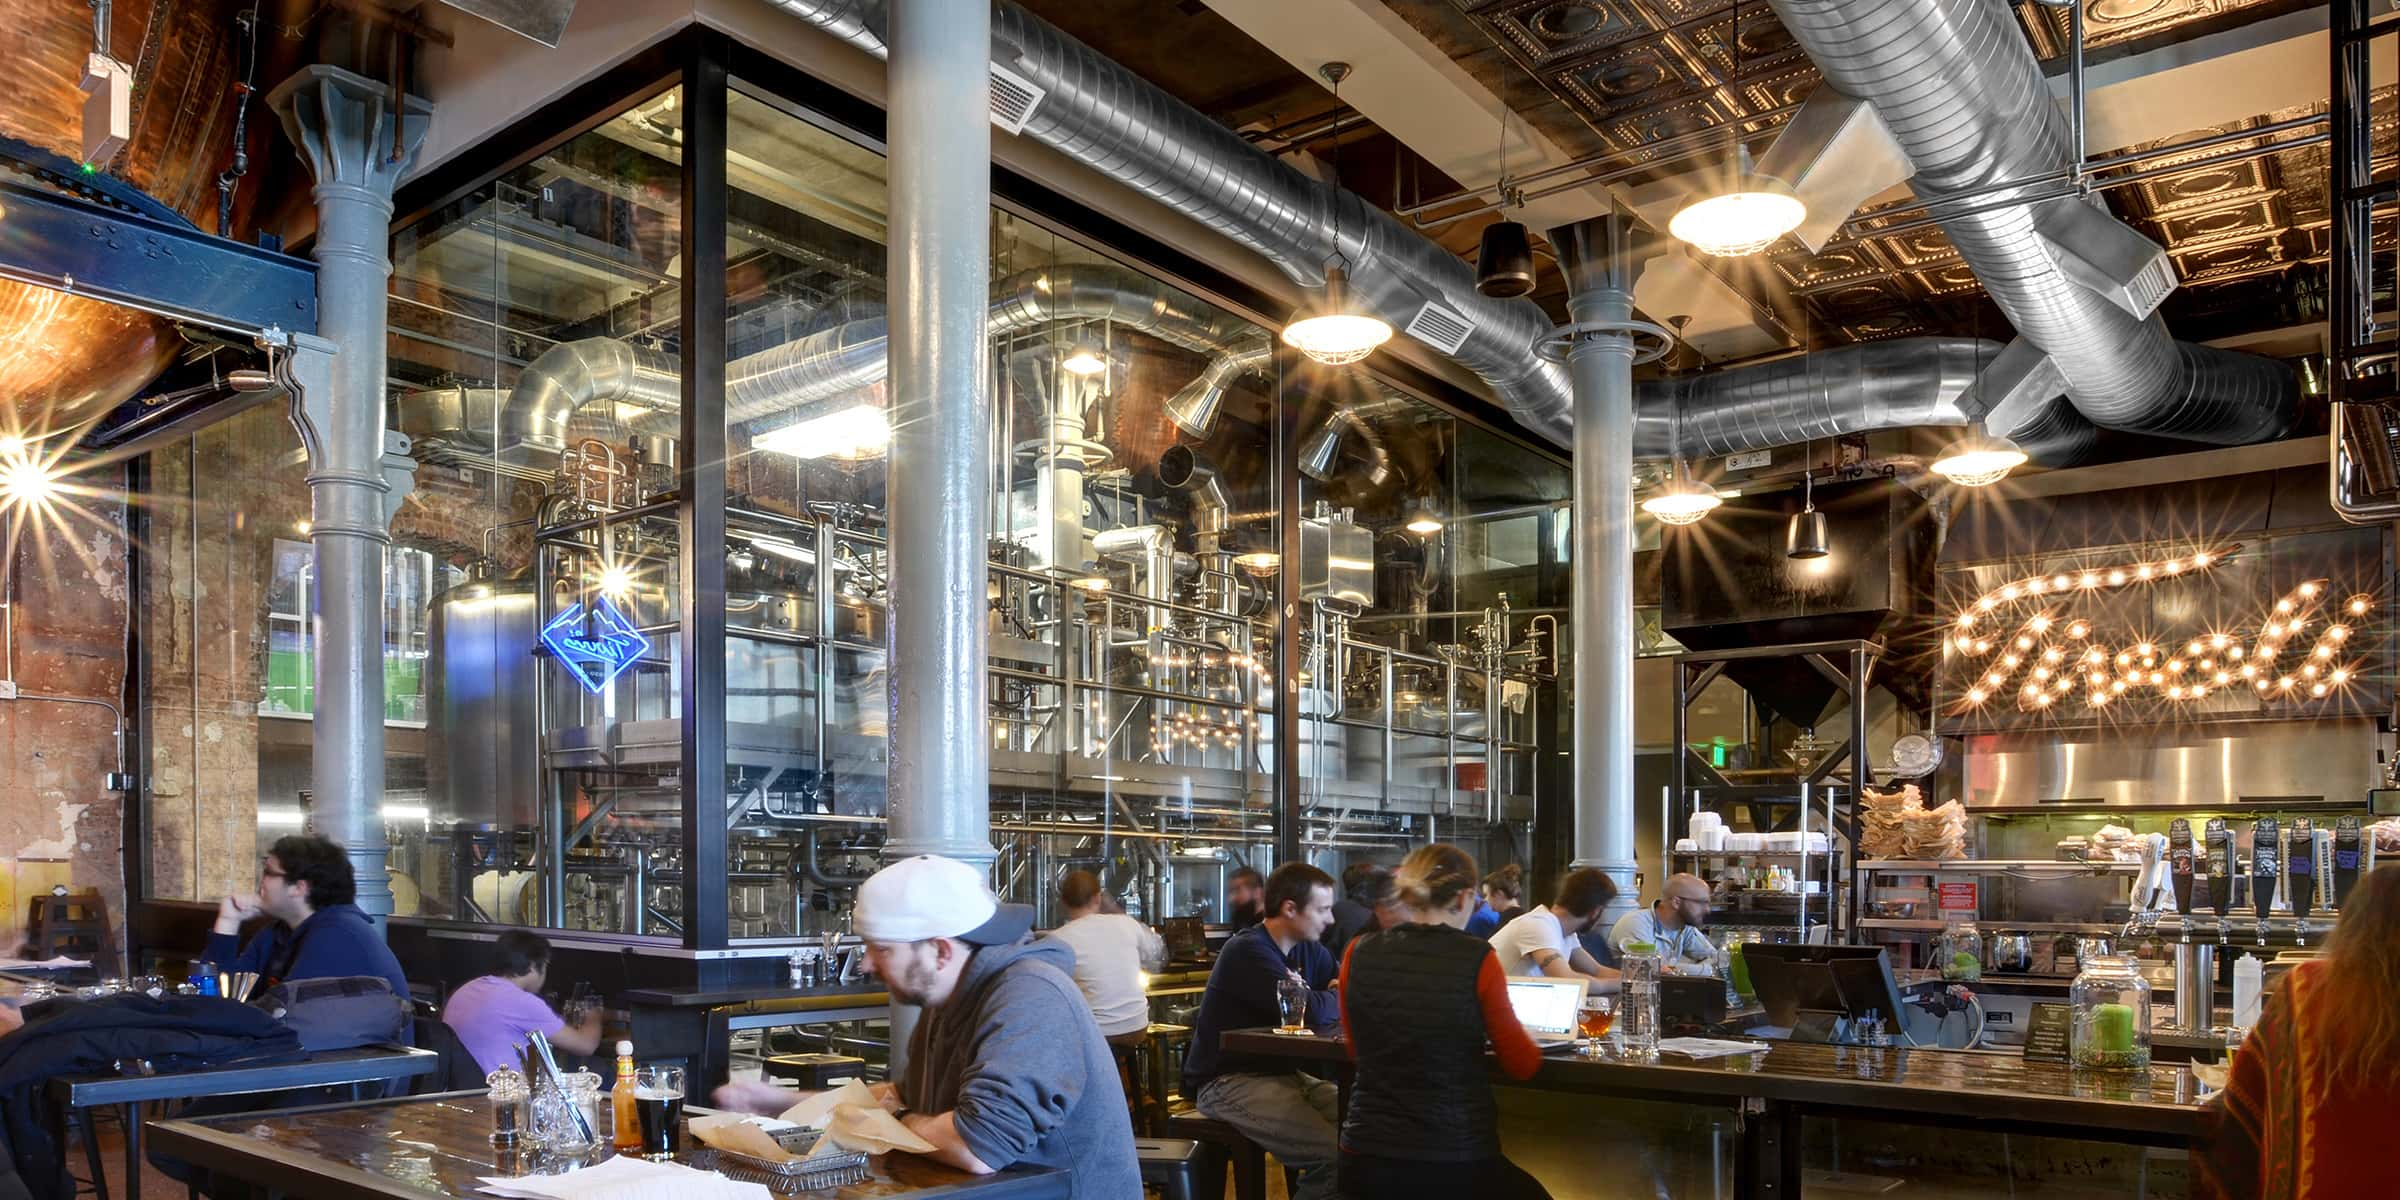 Tivoli Brewing Company - one of the many breweries in Denver with food